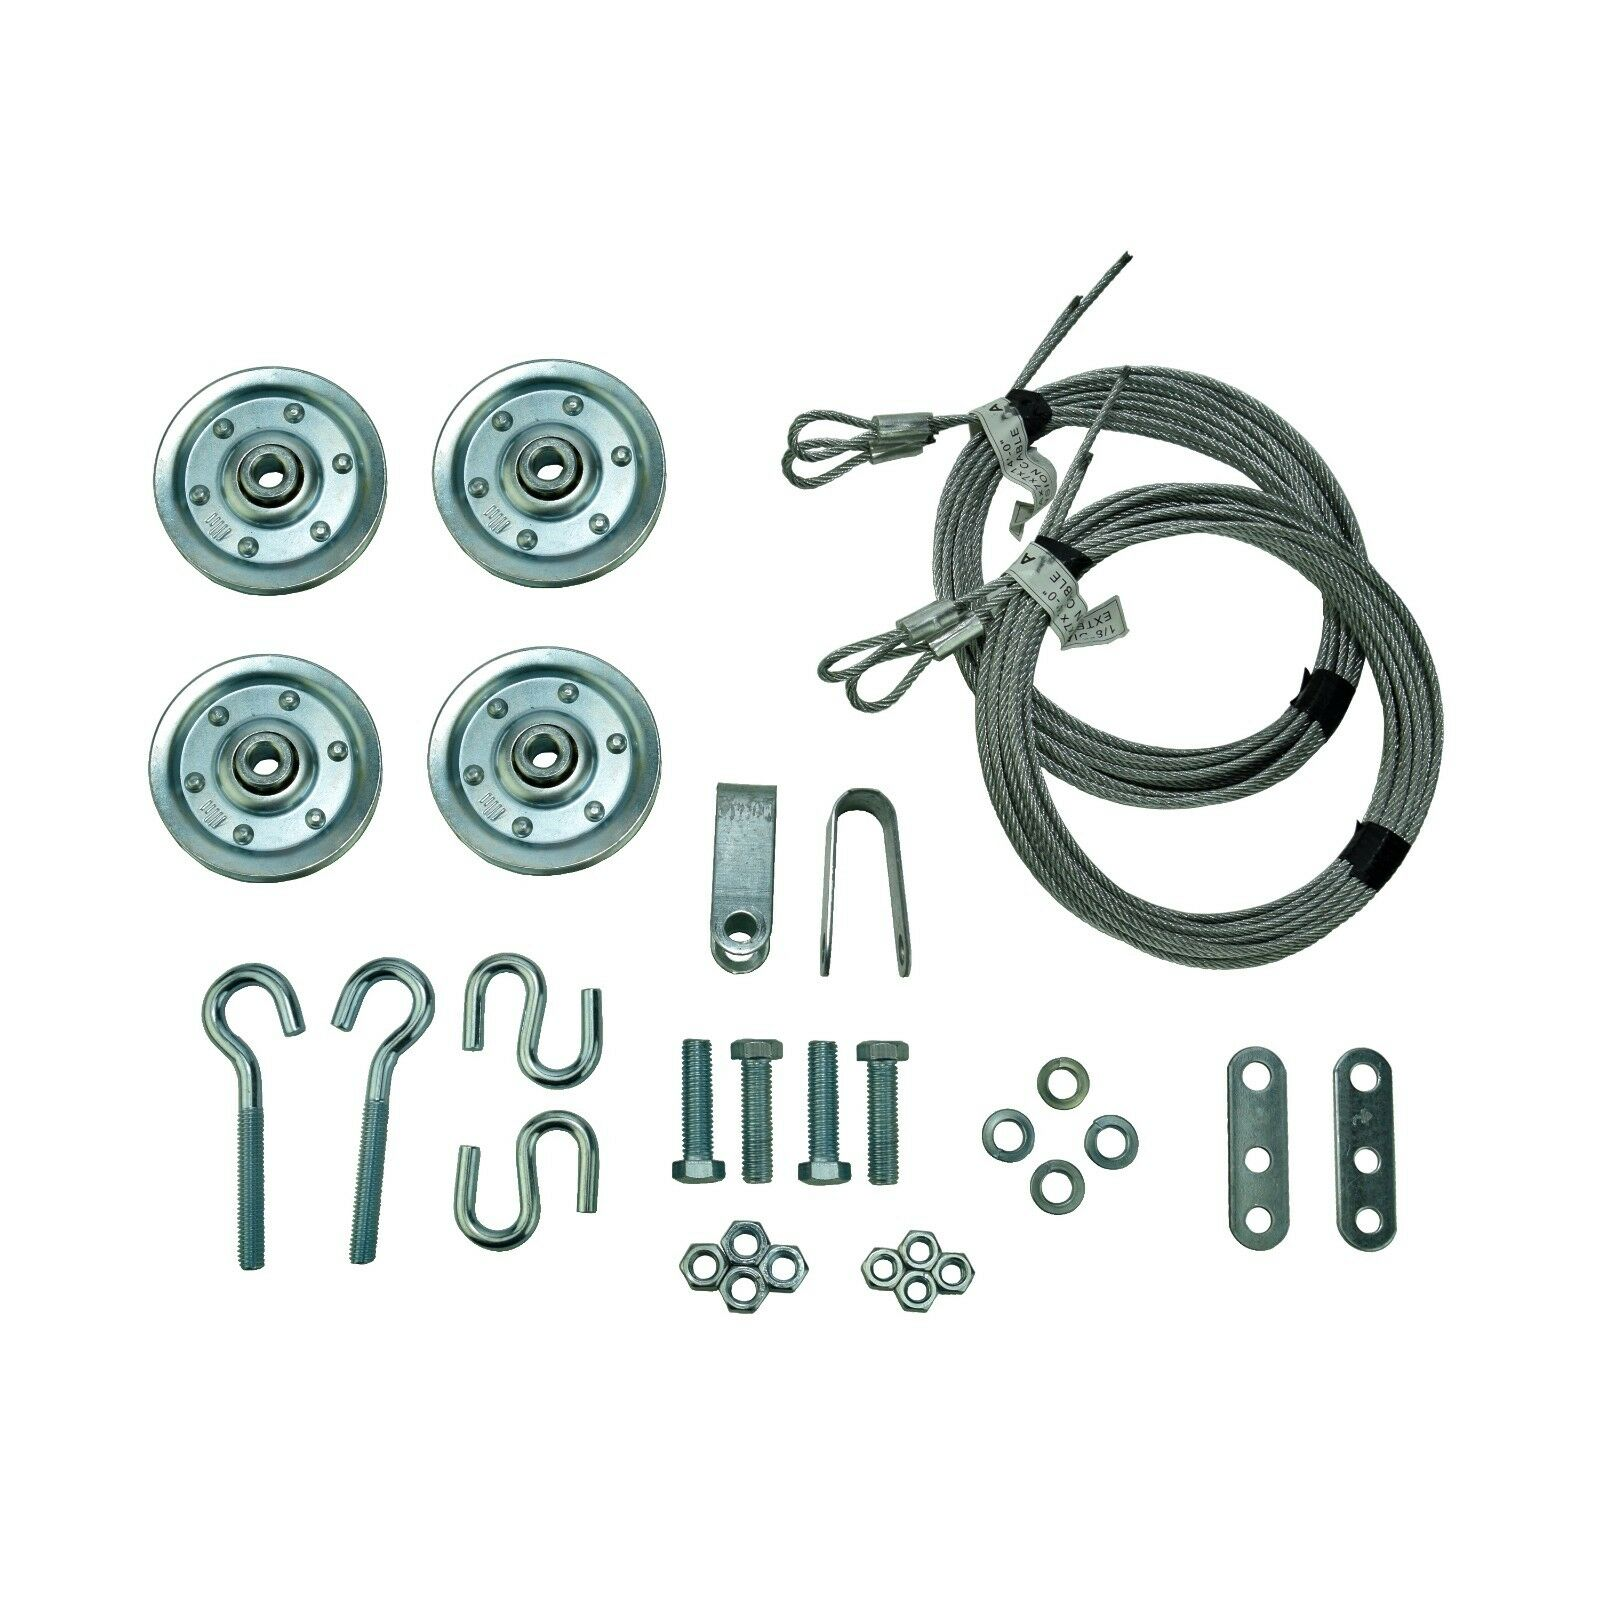 Garage Door Extension Spring Pulley Sheave Kit Safety Cables Chamberlain Opener Wiring Diagram Genie Pro 88 Instructions 1 Of 1free Shipping